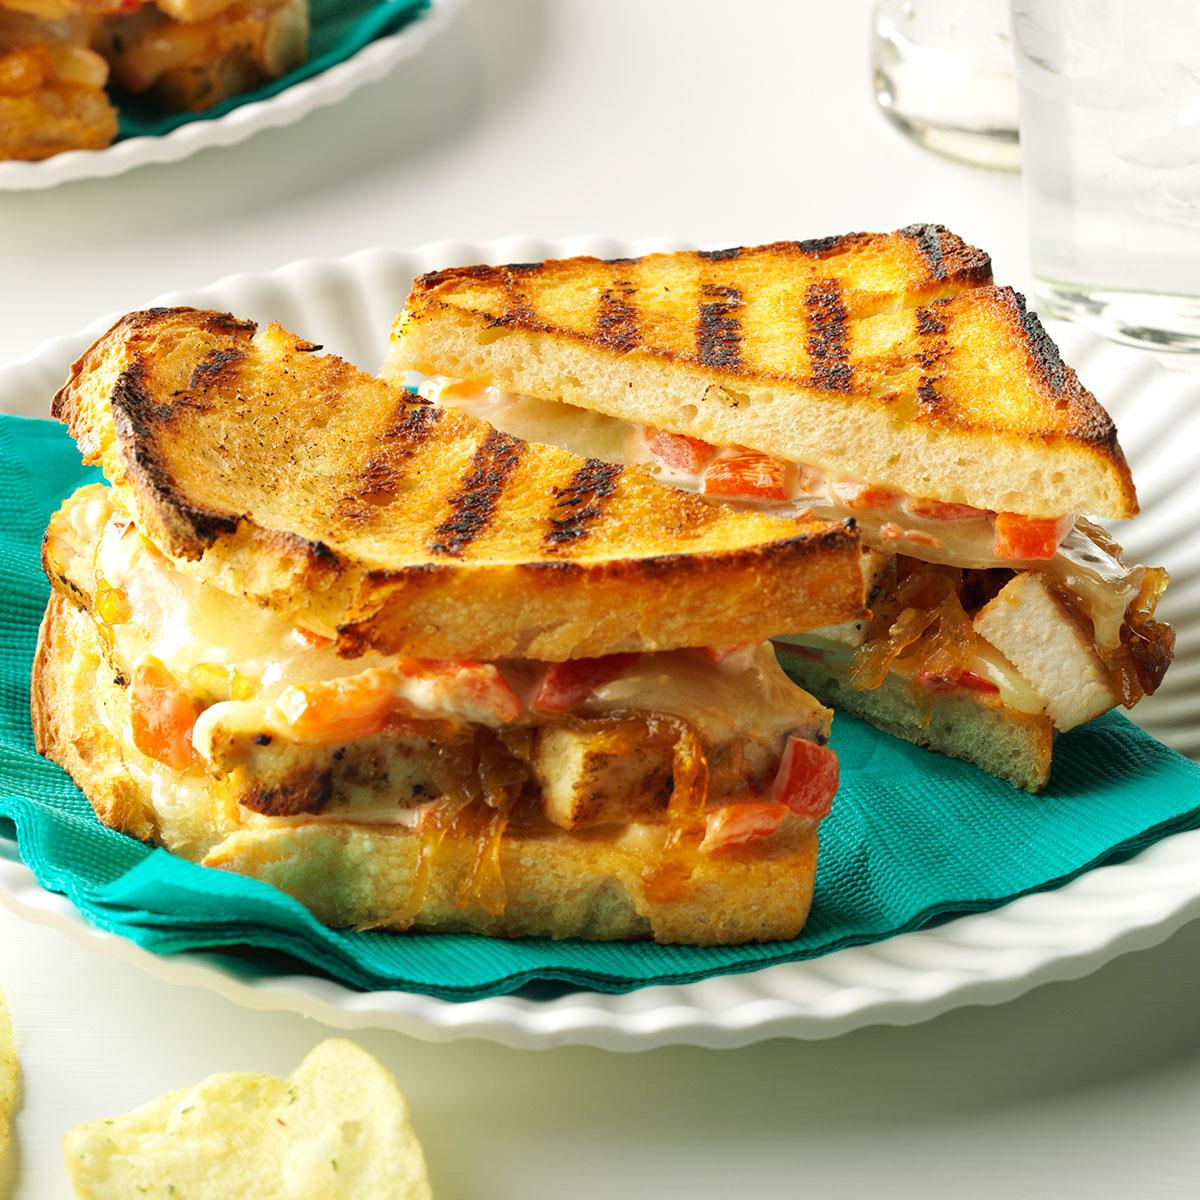 Chicken Caramelized Onion Grilled Cheese